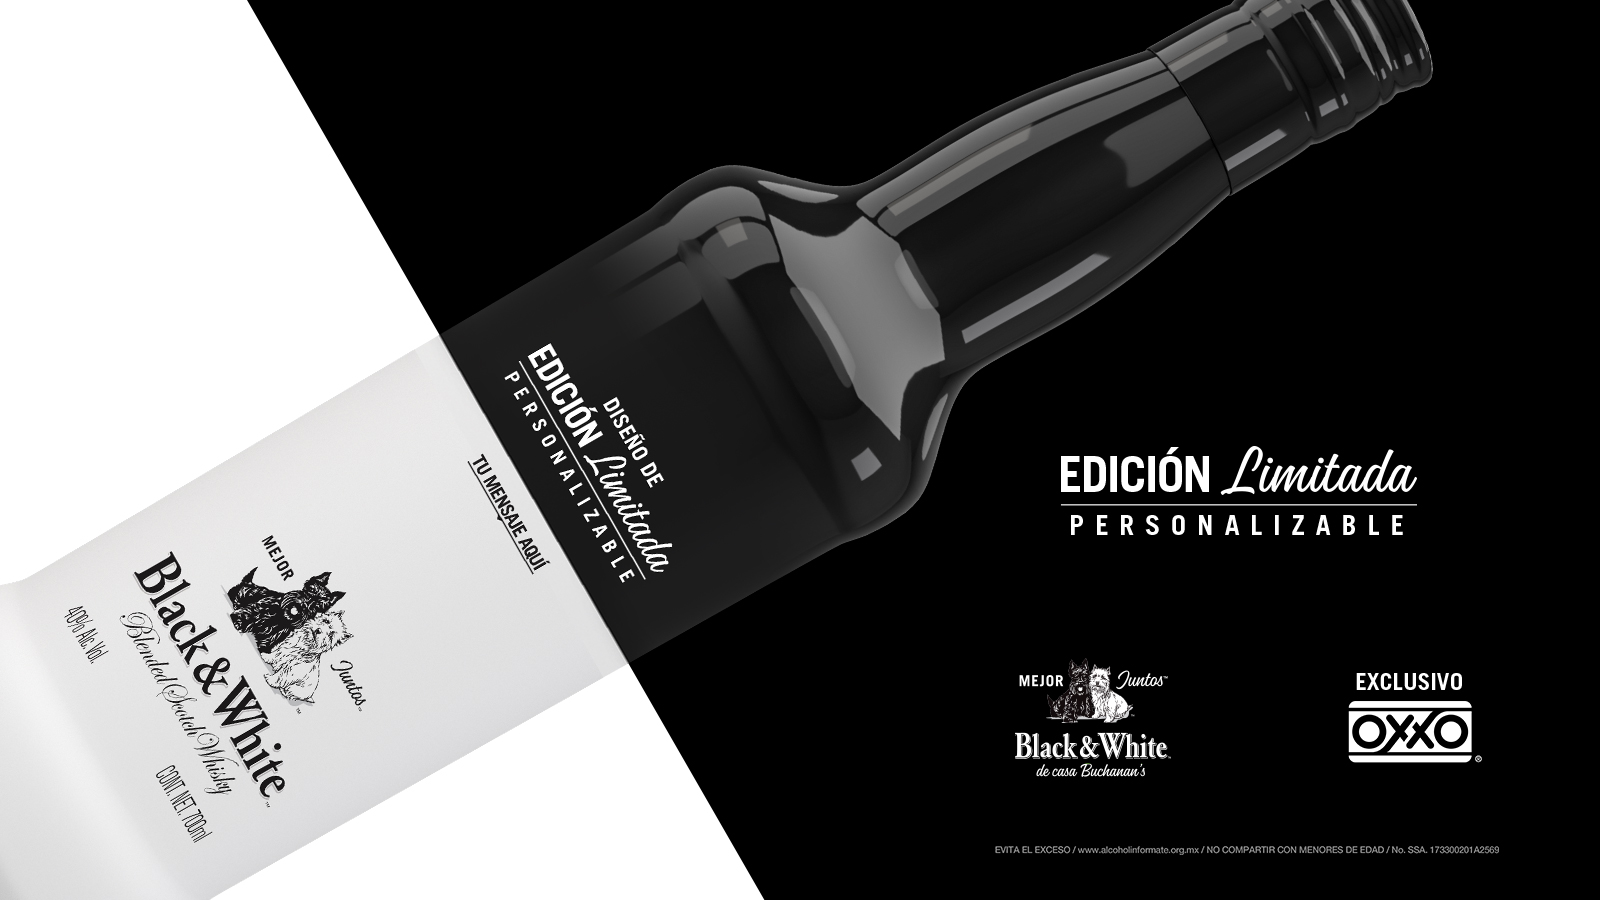 black and white mejor juntos edicion limitada oxxo